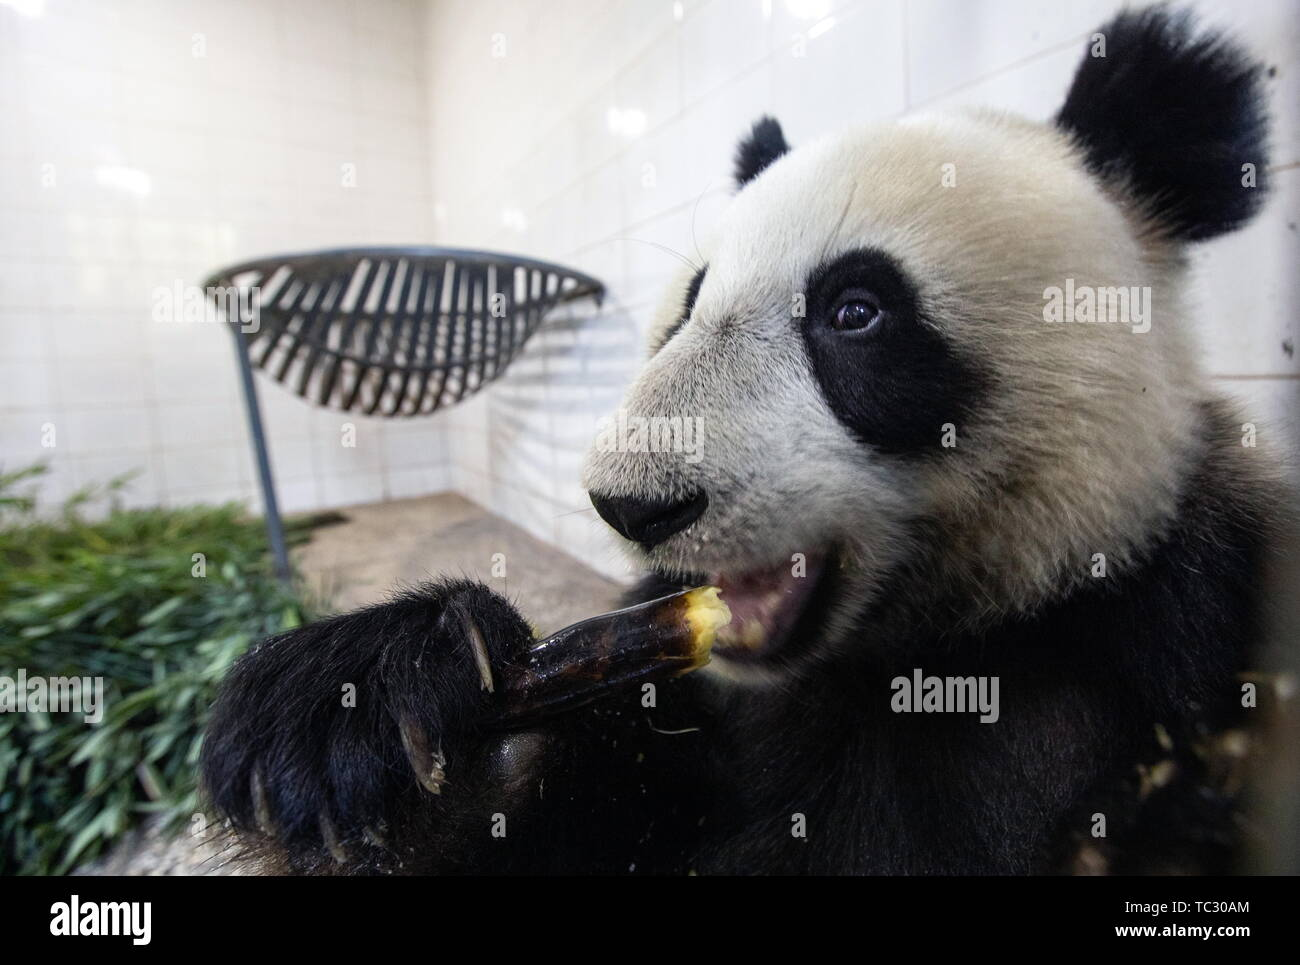 China. 29th Apr, 2019. CHENGDU, SICHUAN PROVINCE, CHINA - JUNE 5, 2019: Pictured in this file image dated April 29, 2019 is a giant panda at the Chengdu panda base. 3-year-old Ru Yi and 2-year-old Ding Ding are sent to the Moscow Zoo. The opening of the Moscow Zoo's panda pavilion is to be attended by Russian President Vladimir Putin and Chinese President Xi Jinping. File image/Artyom Ivanov/TASS Credit: ITAR-TASS News Agency/Alamy Live News - Stock Image